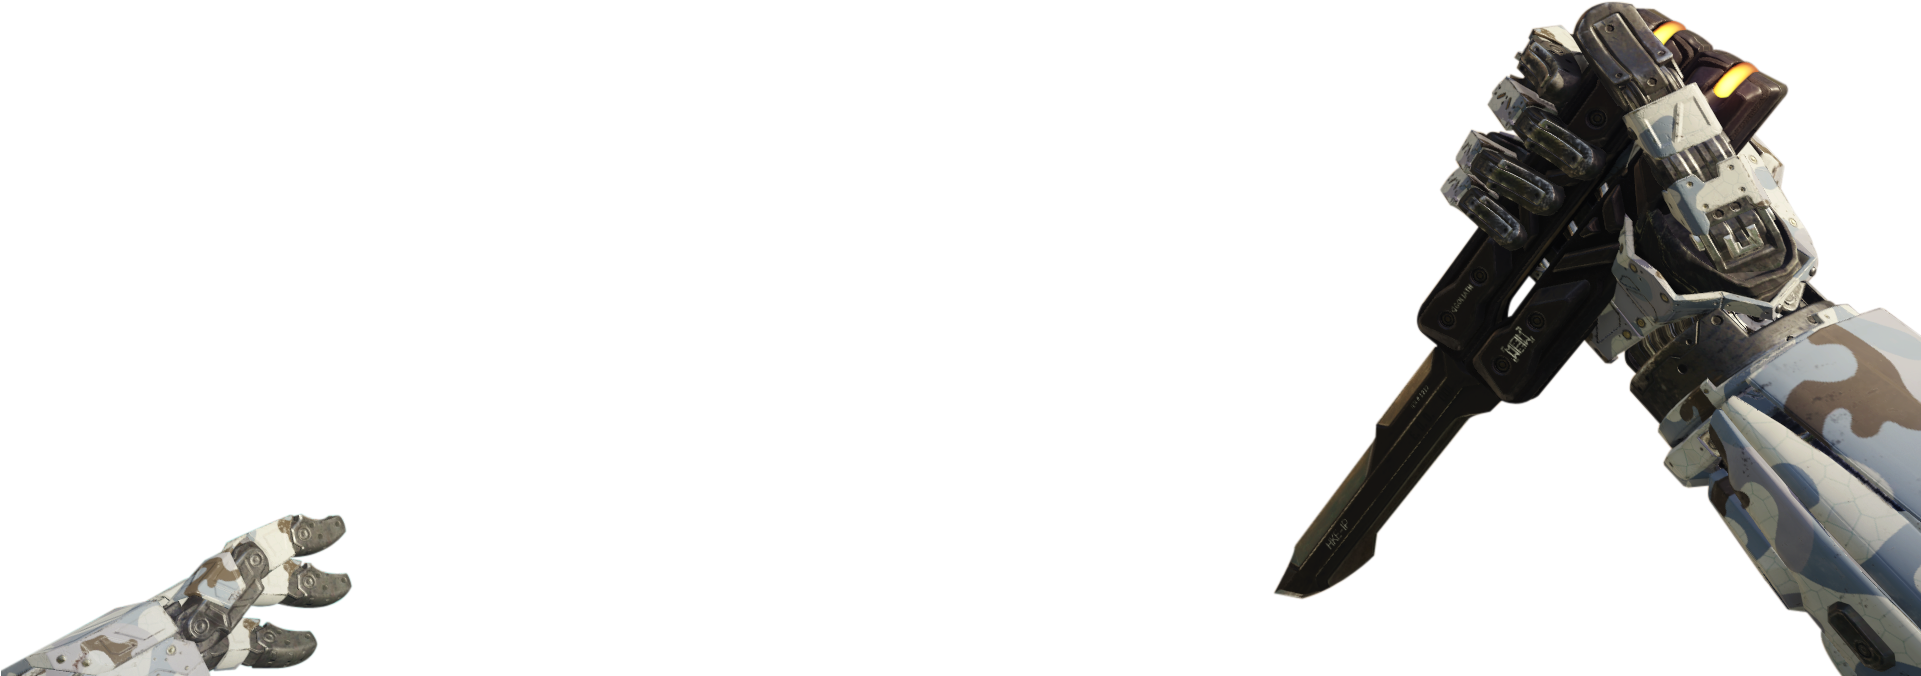 HD Call Of Duty Black Ops 3 Png.